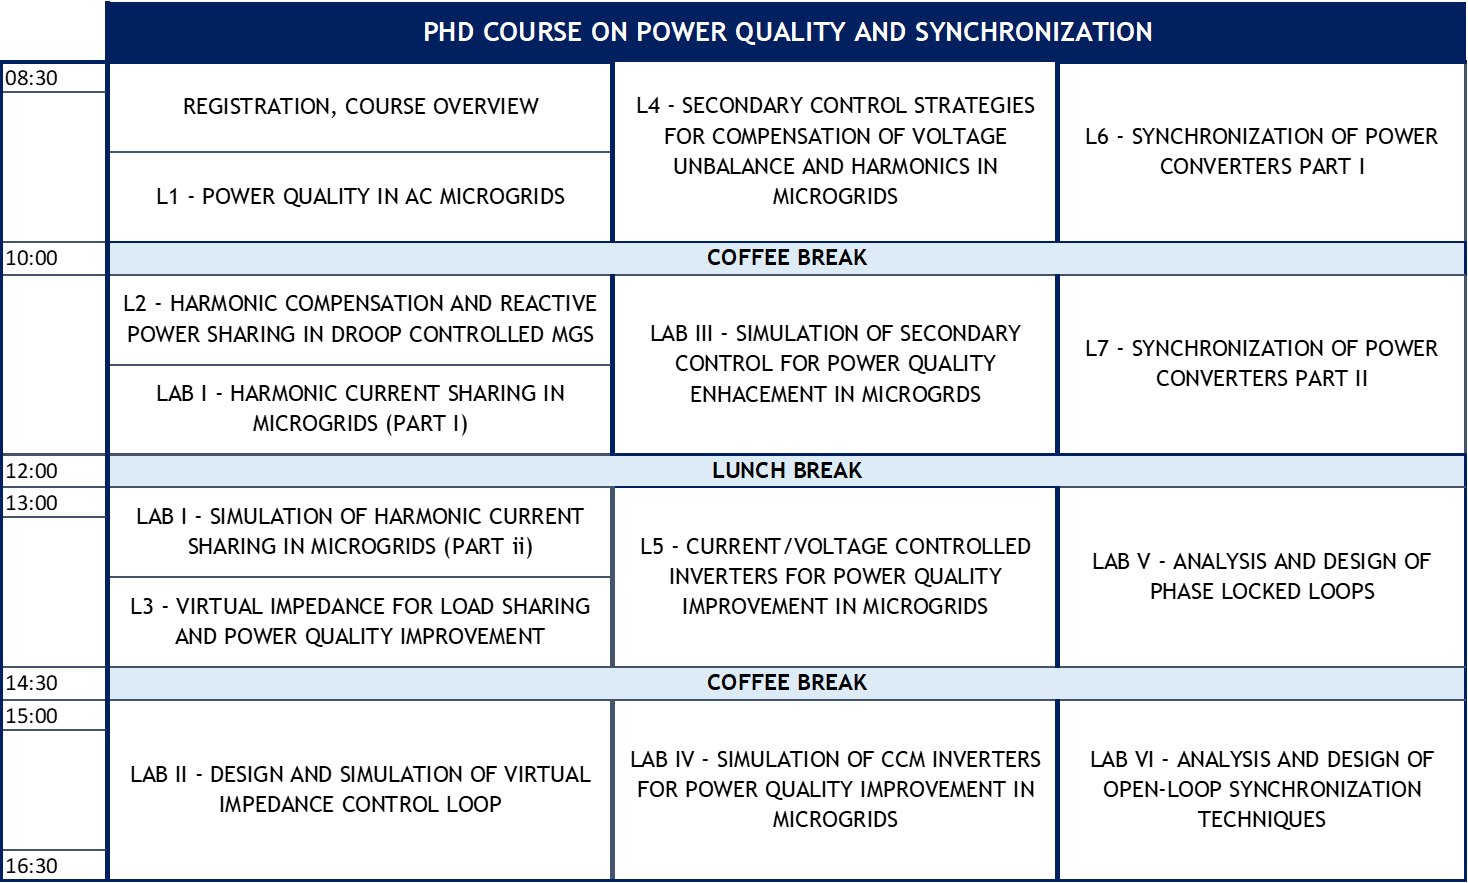 POWER QUALITY COURSE SCHEDULE